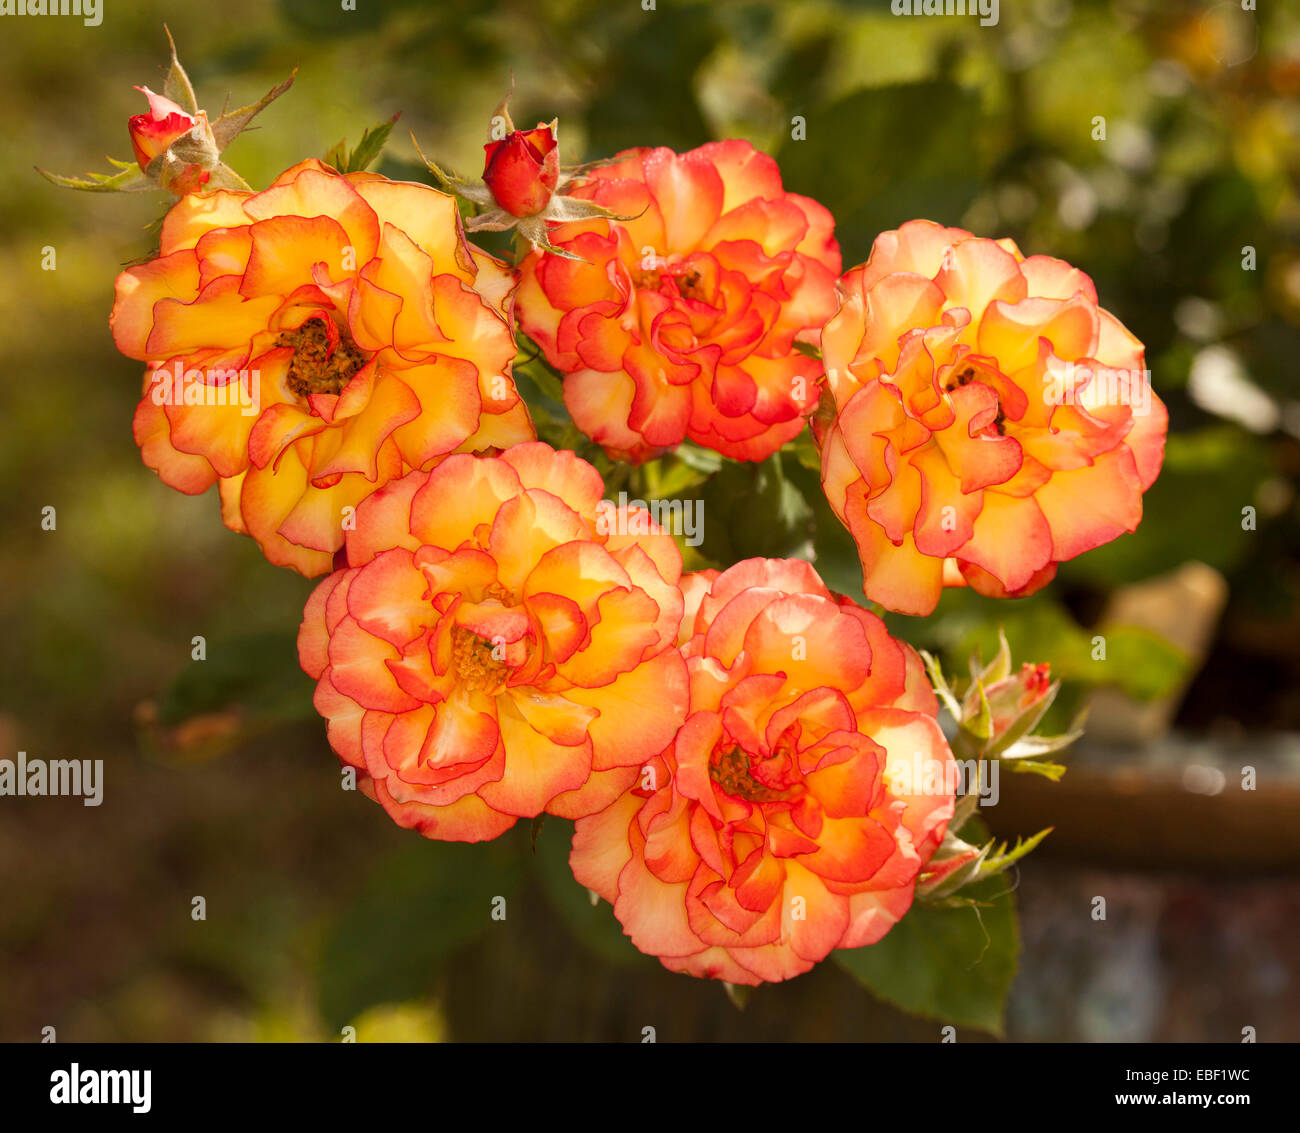 Cluster Of Spectacular Parade Roses Buds Vivid Red Orange And